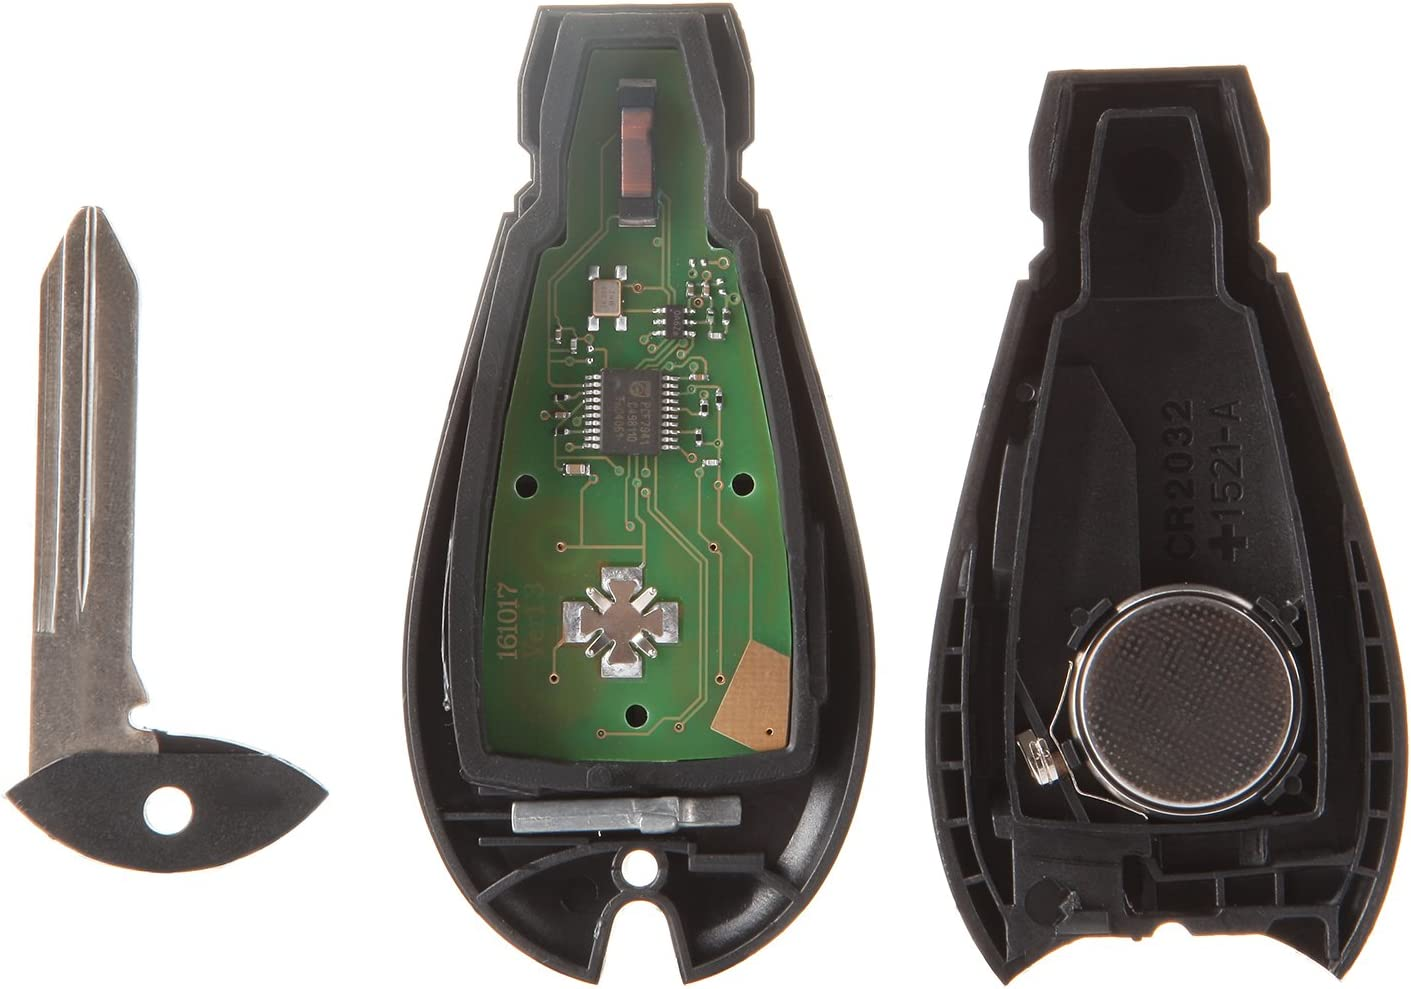 OCPTY 1X Uncut Keyless Entry Remote Control Key Fob Replacement fit for Specific Chrysler Dodge Volkswagen Routan Series M3N5WY783X IYZ-C01C IYZC01C IYZ-CO1C